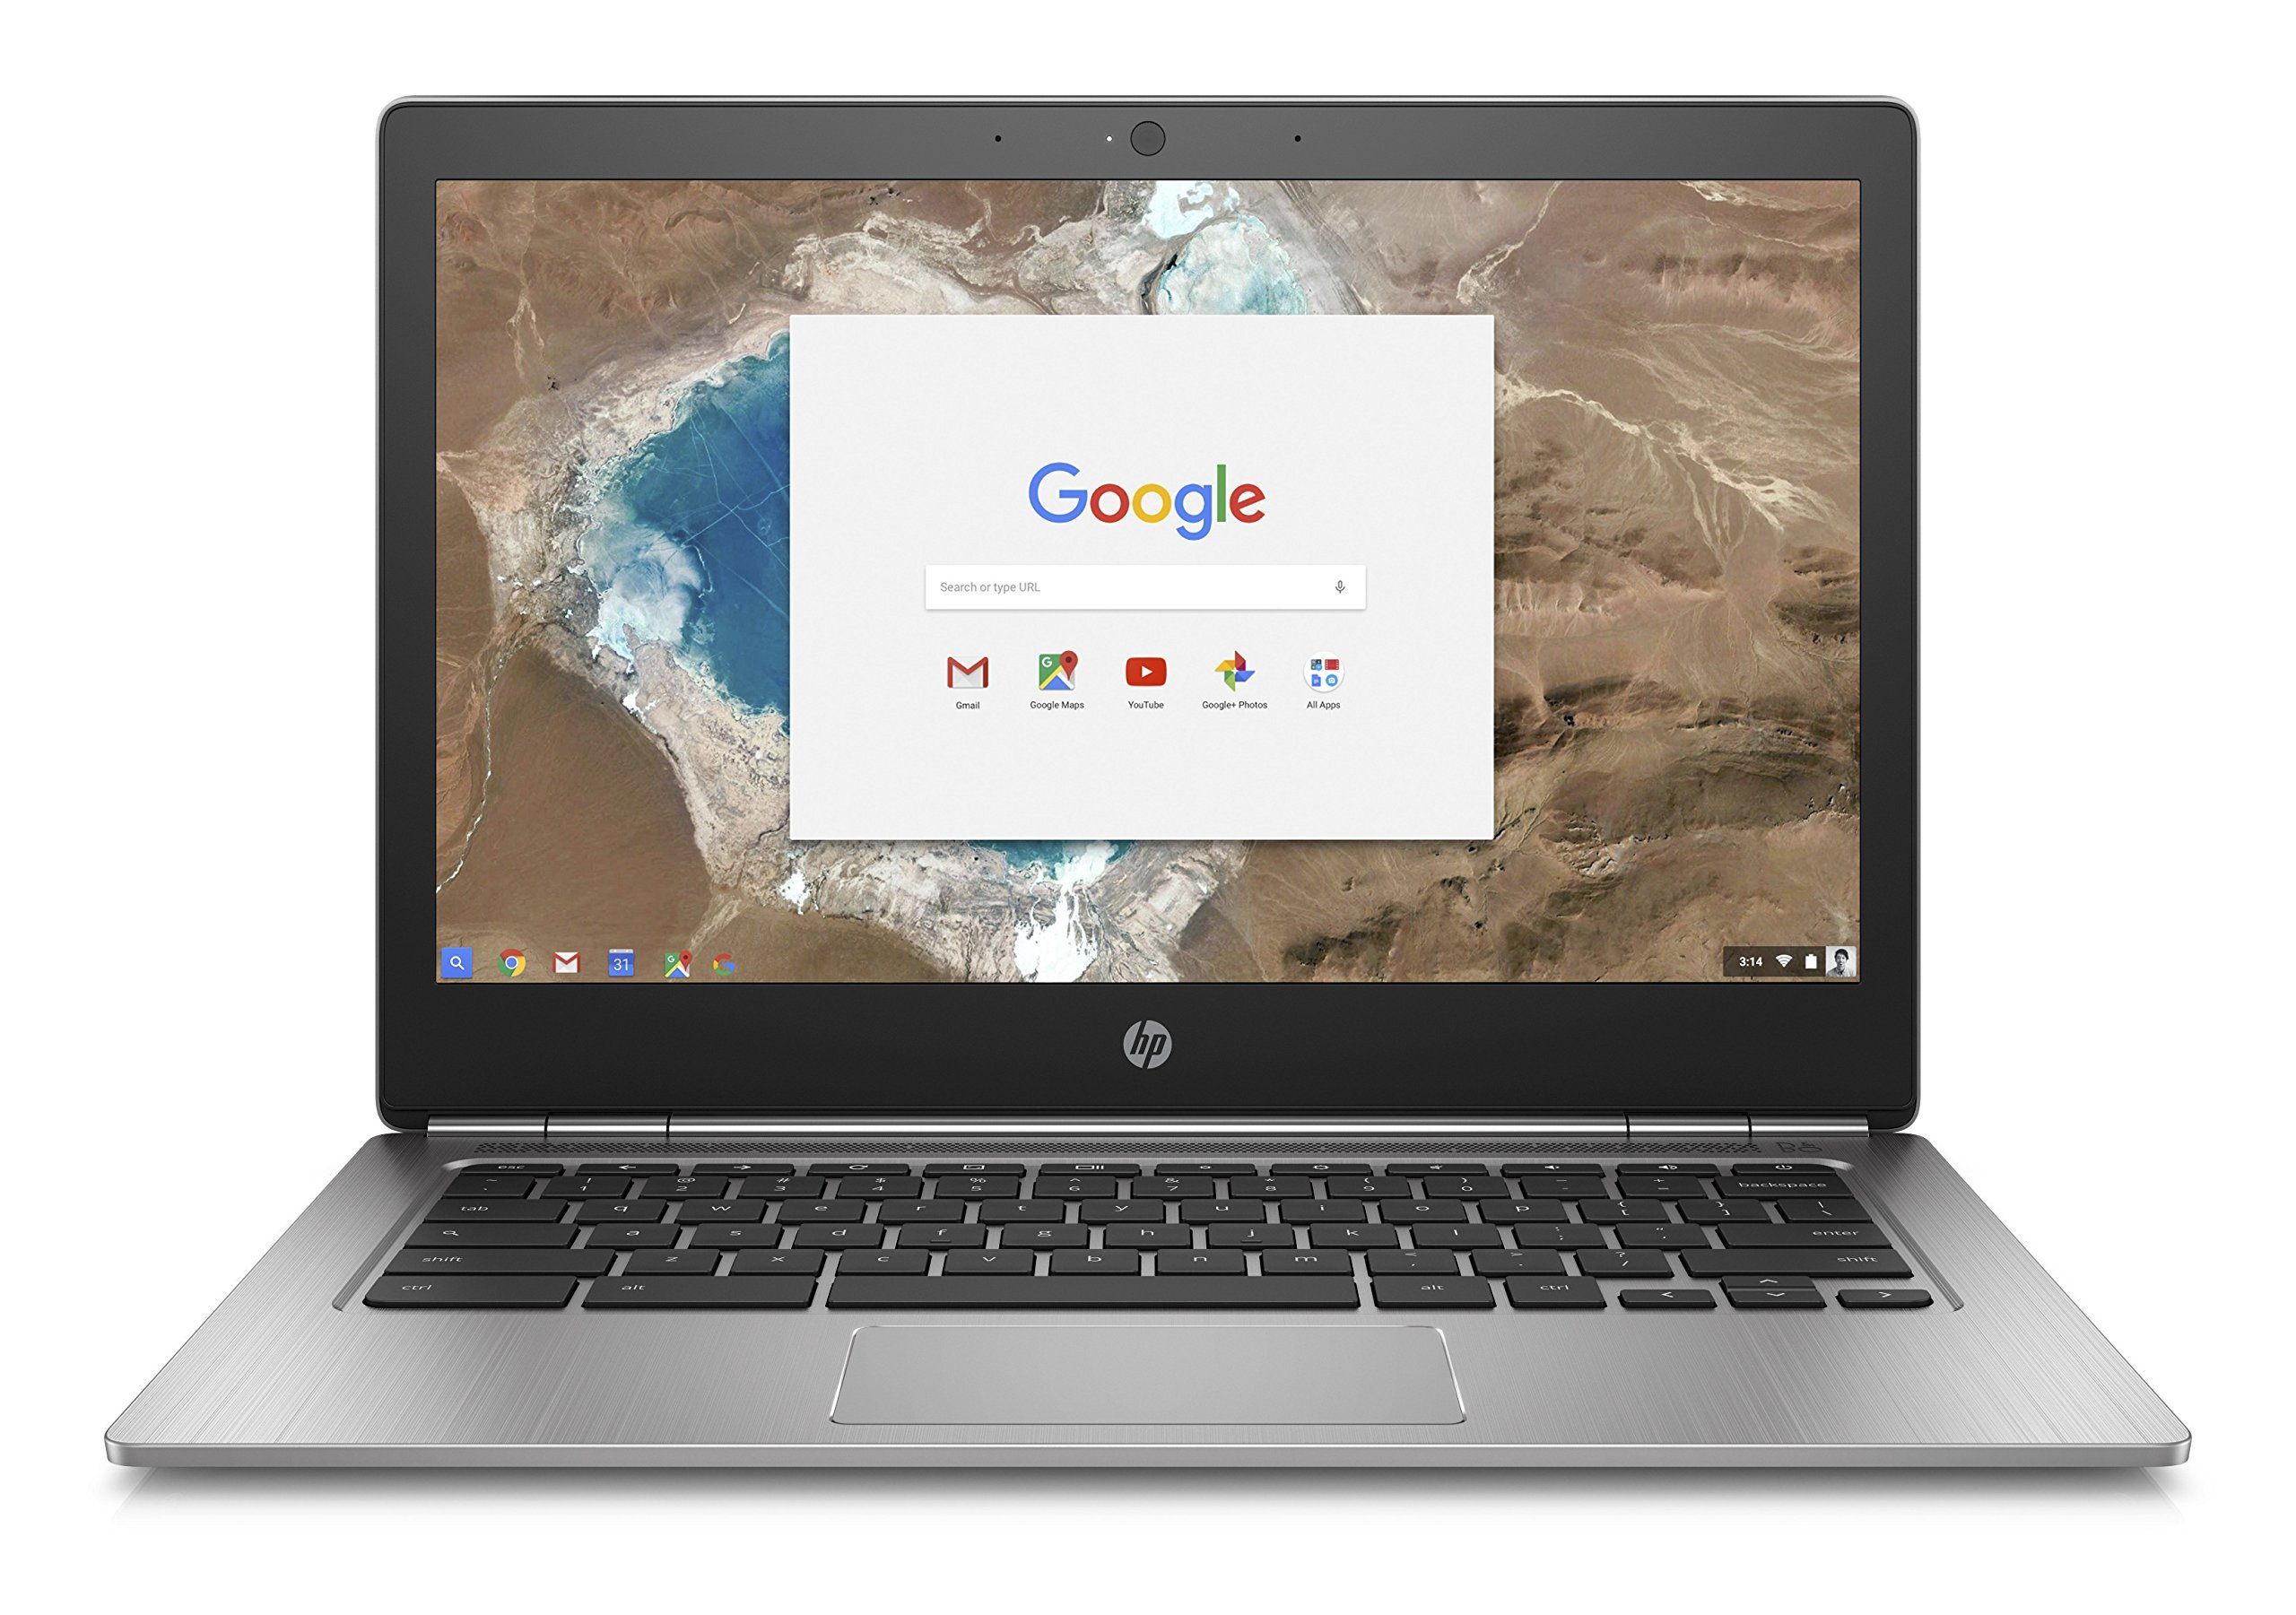 HP 13-G1 13.3'' QHD+ Aluminum Chromebook, Intel Intel 4405Y Dual-Core, 32GB SSD, 4GB DDR3, 802.11ac, Bluetooth, ChromeOS (Certified Refurbished)